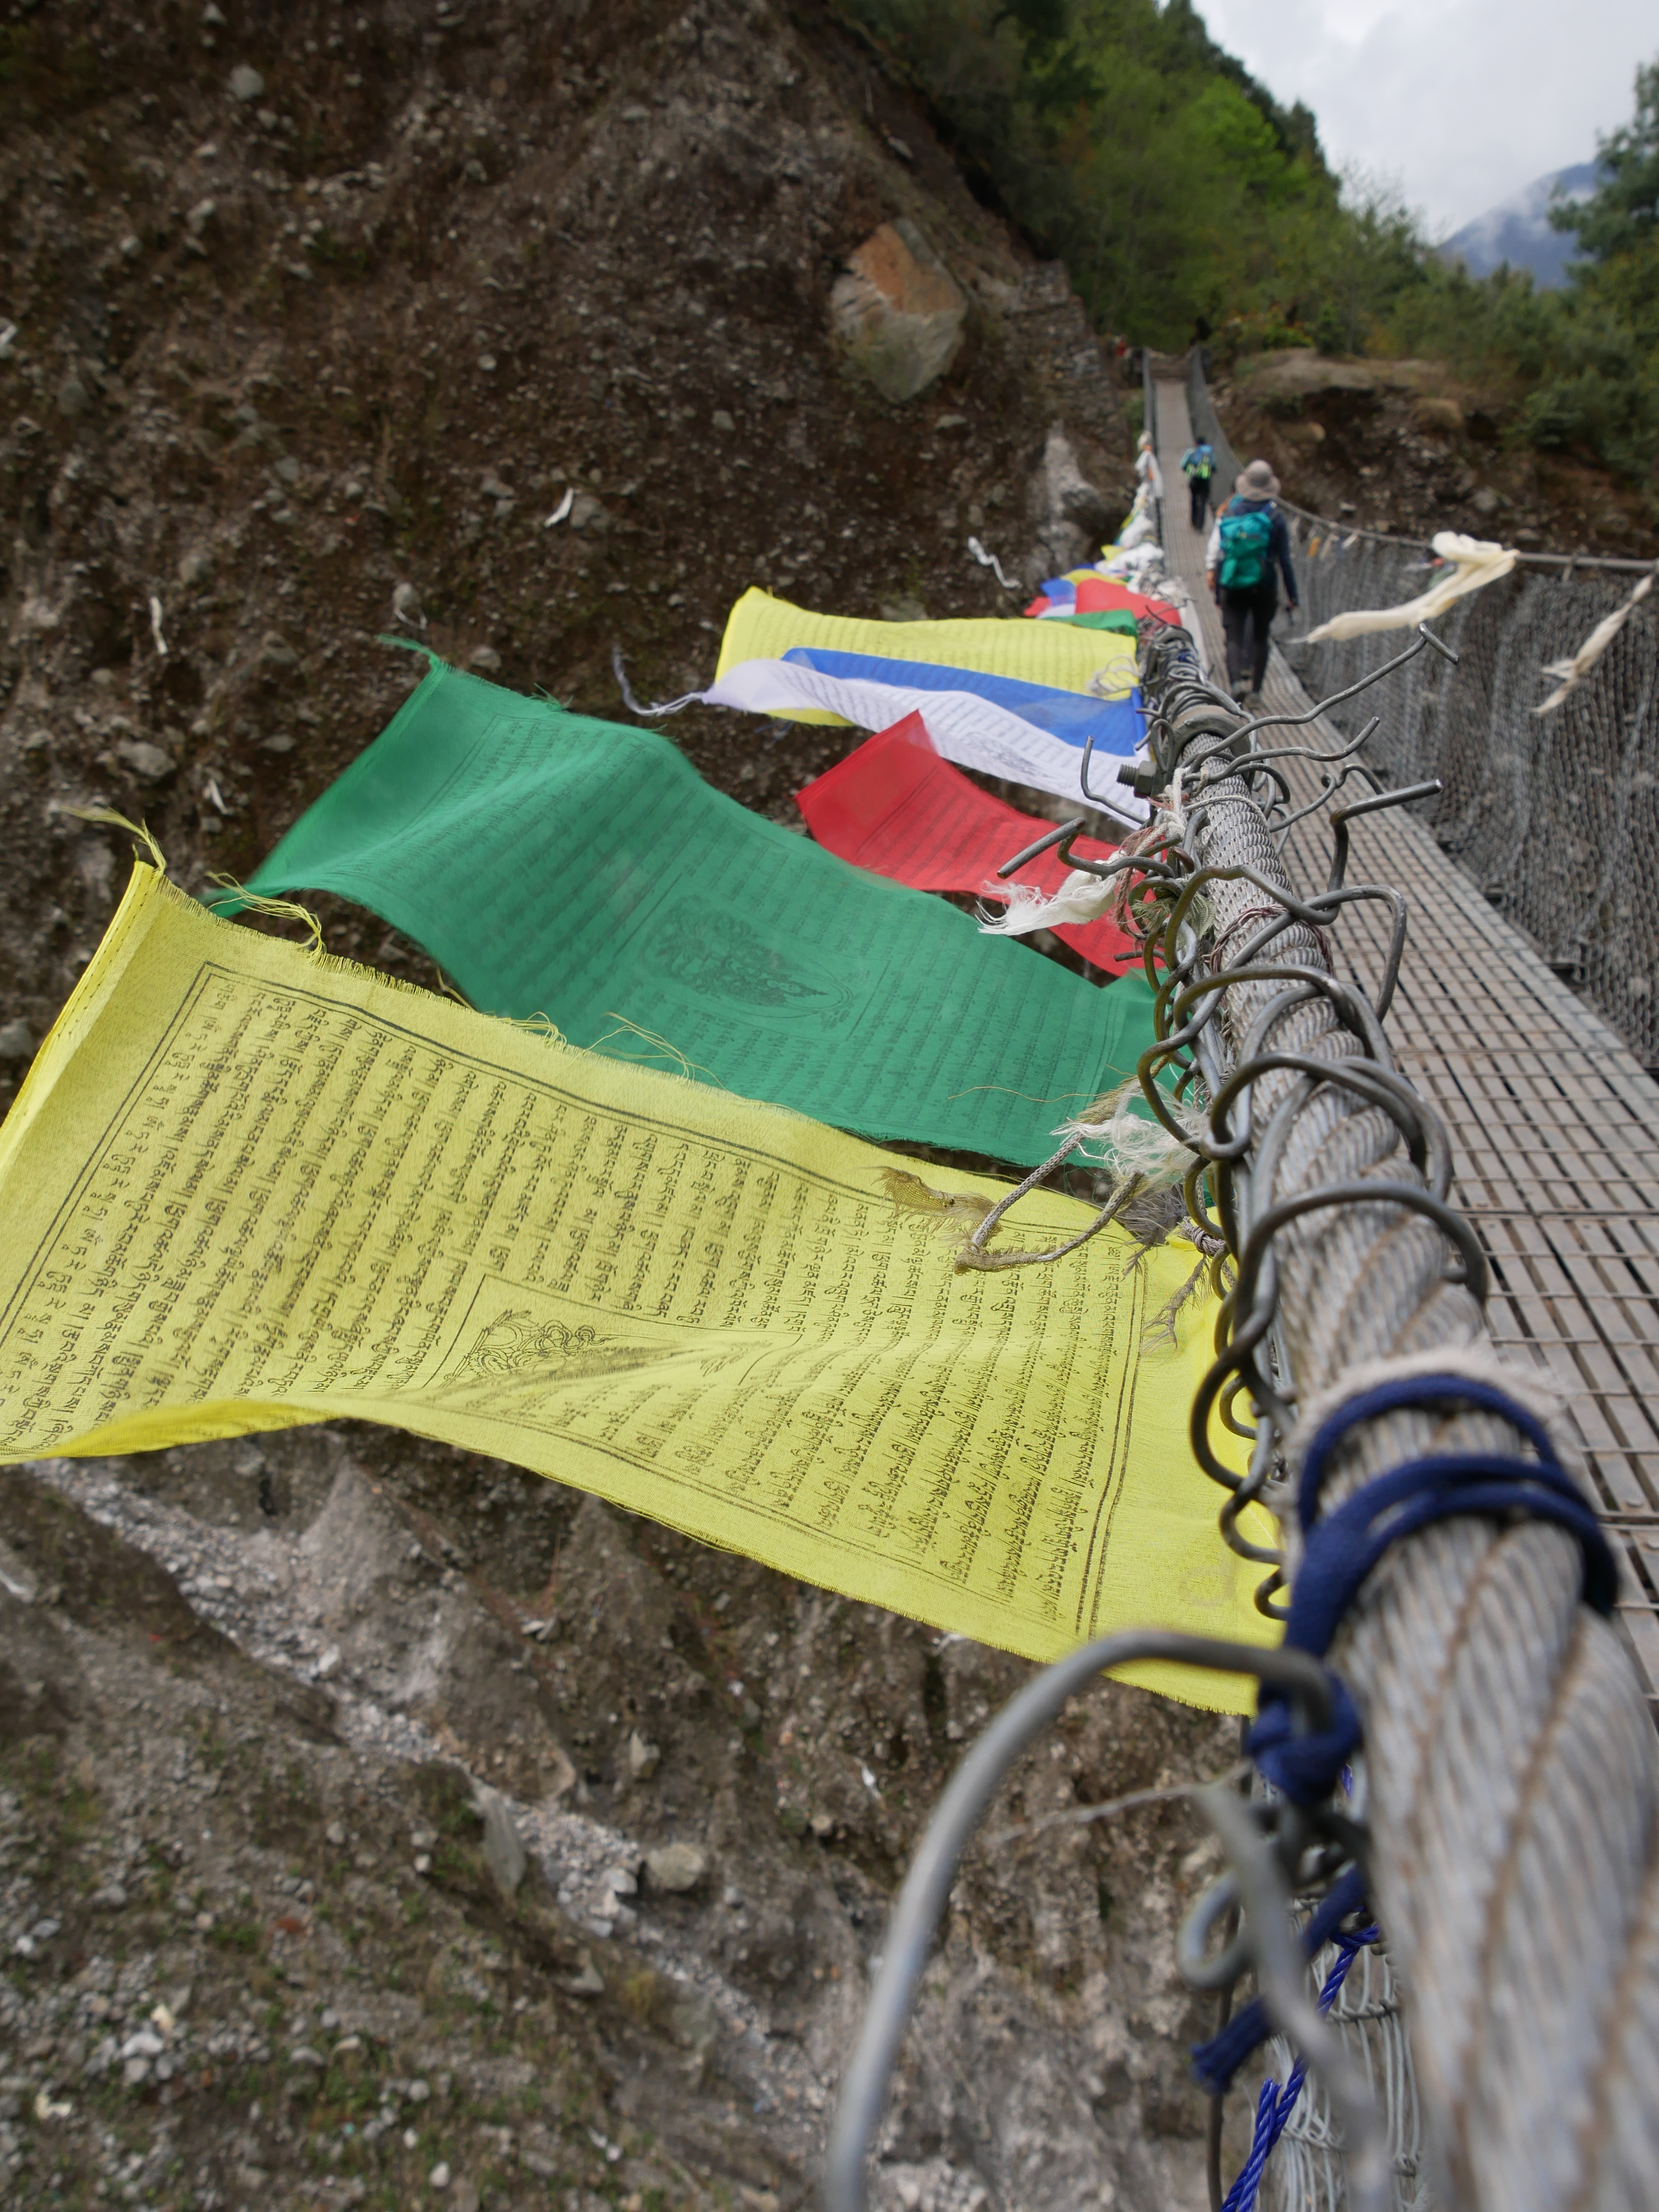 All the swing bridges were covered in prayer flags, flapping in the breeze